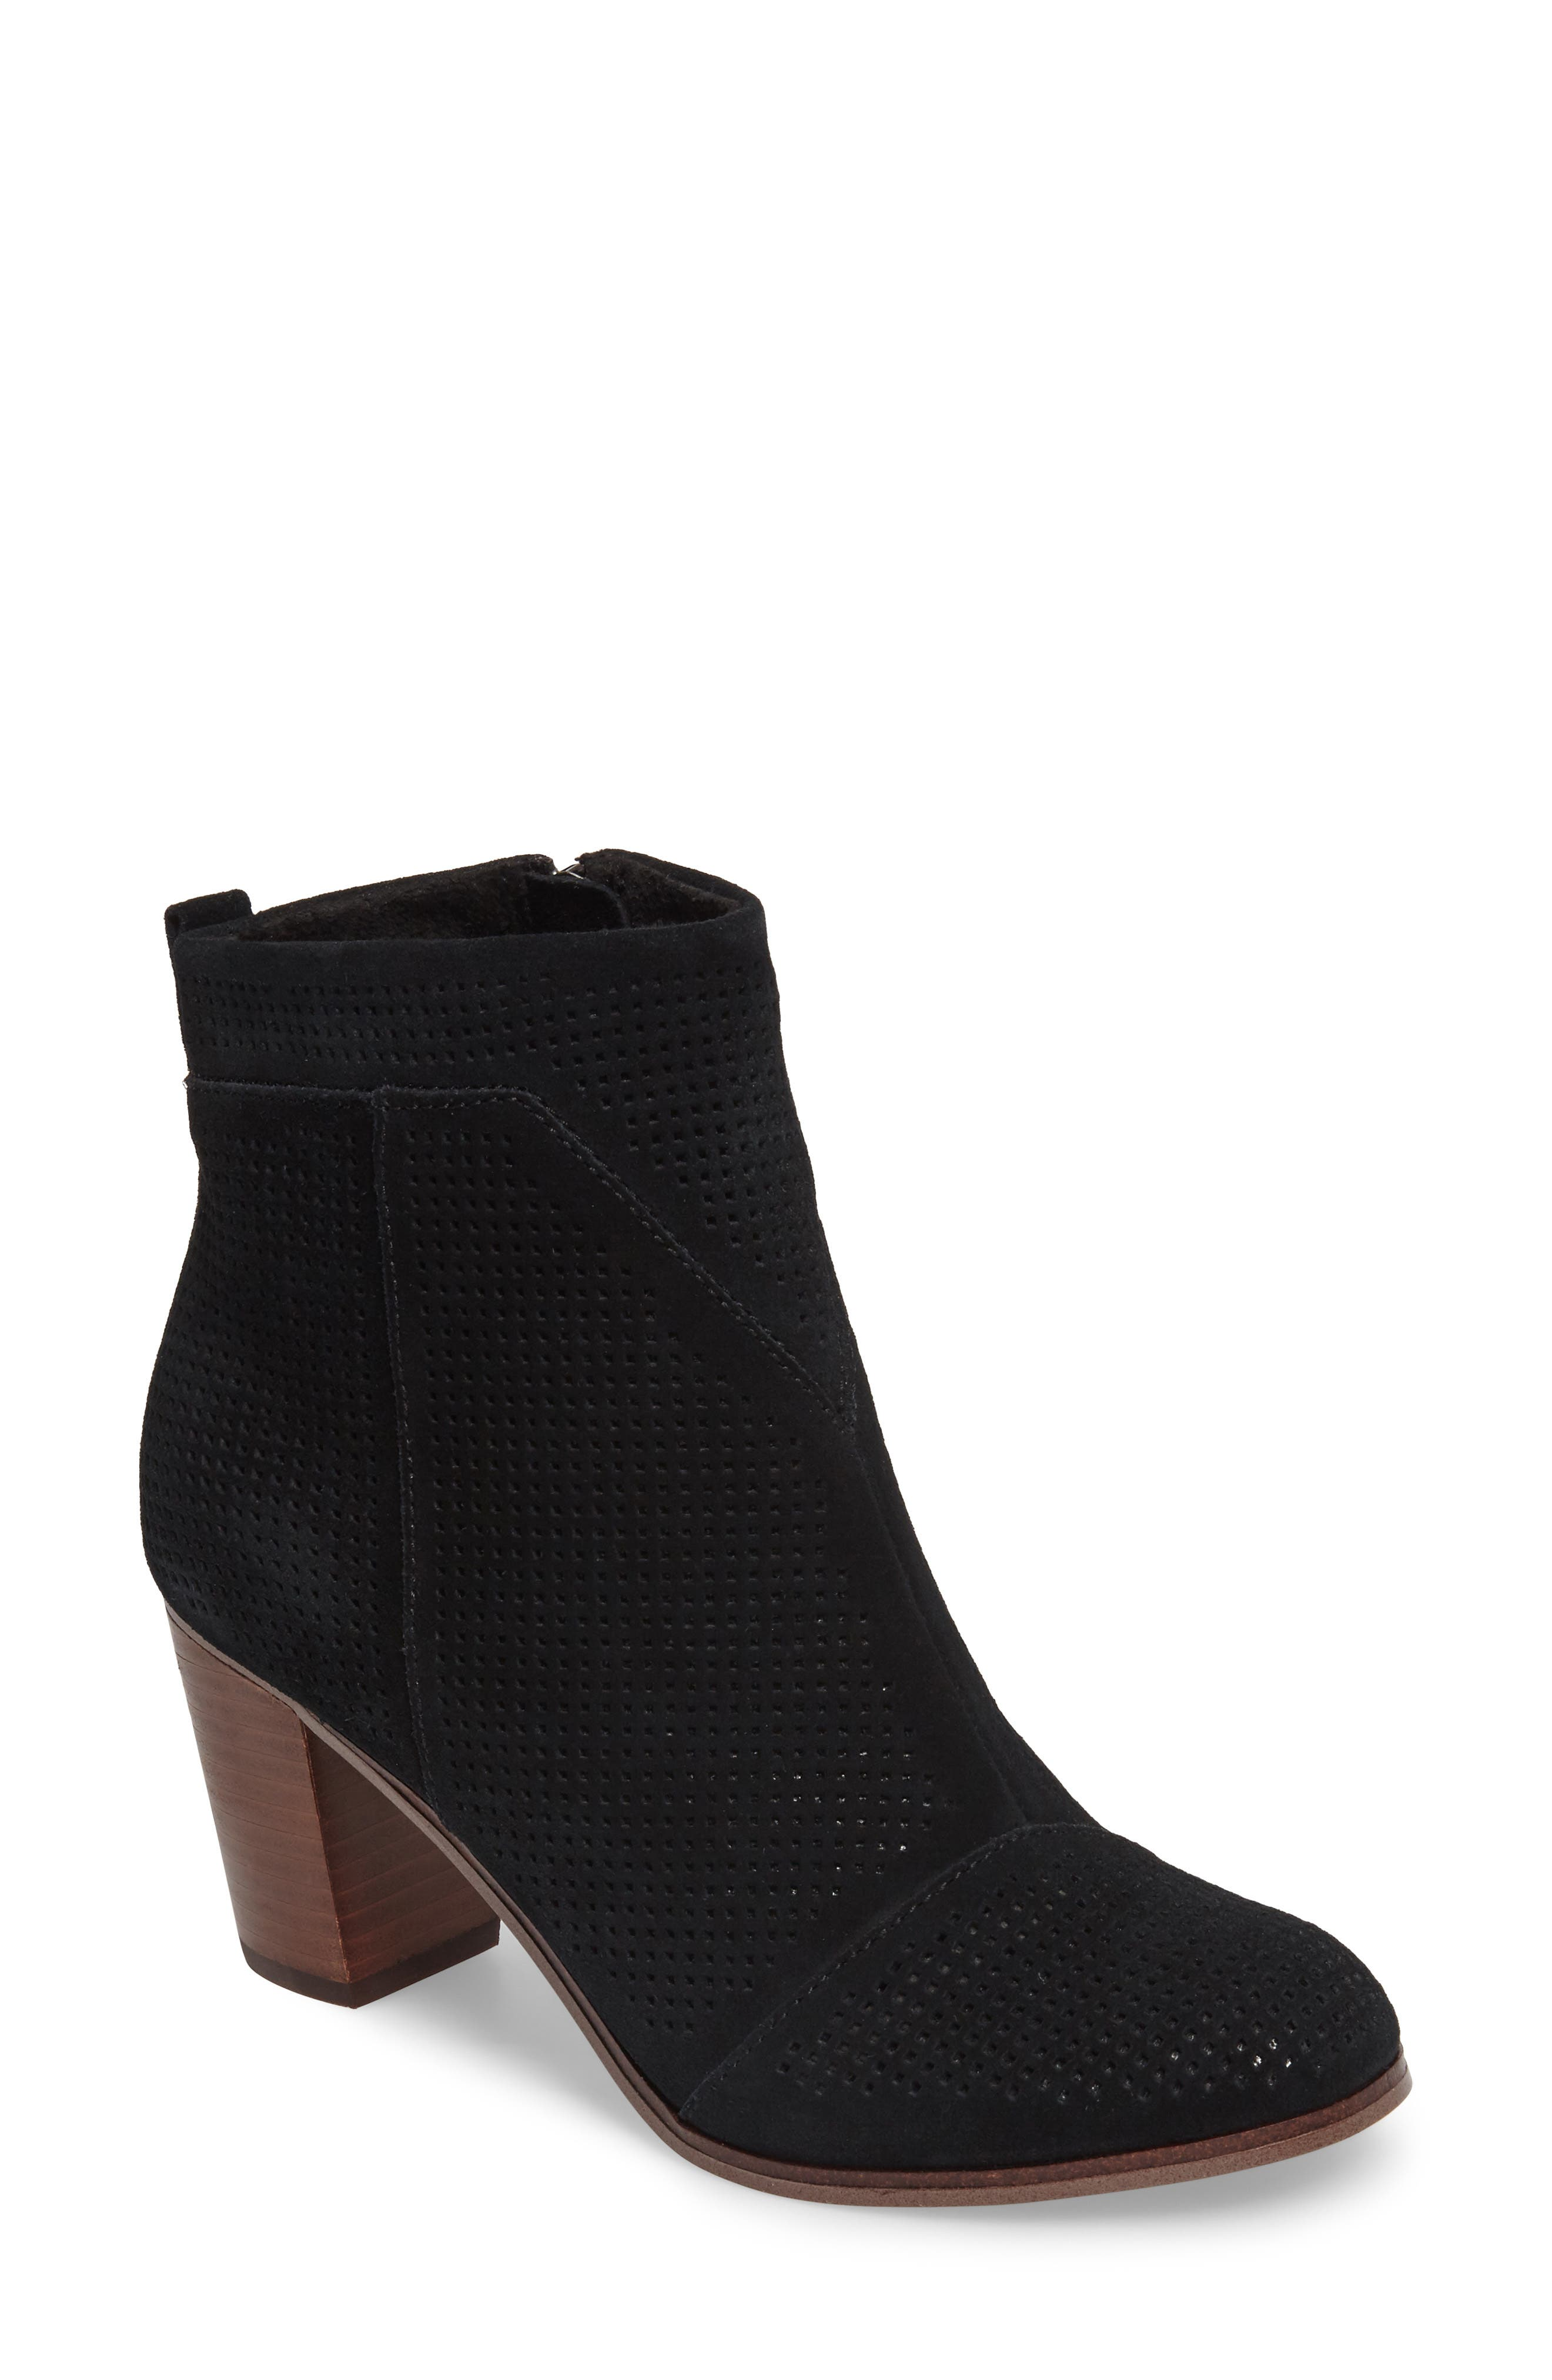 'Lunata' Bootie,                         Main,                         color, 001